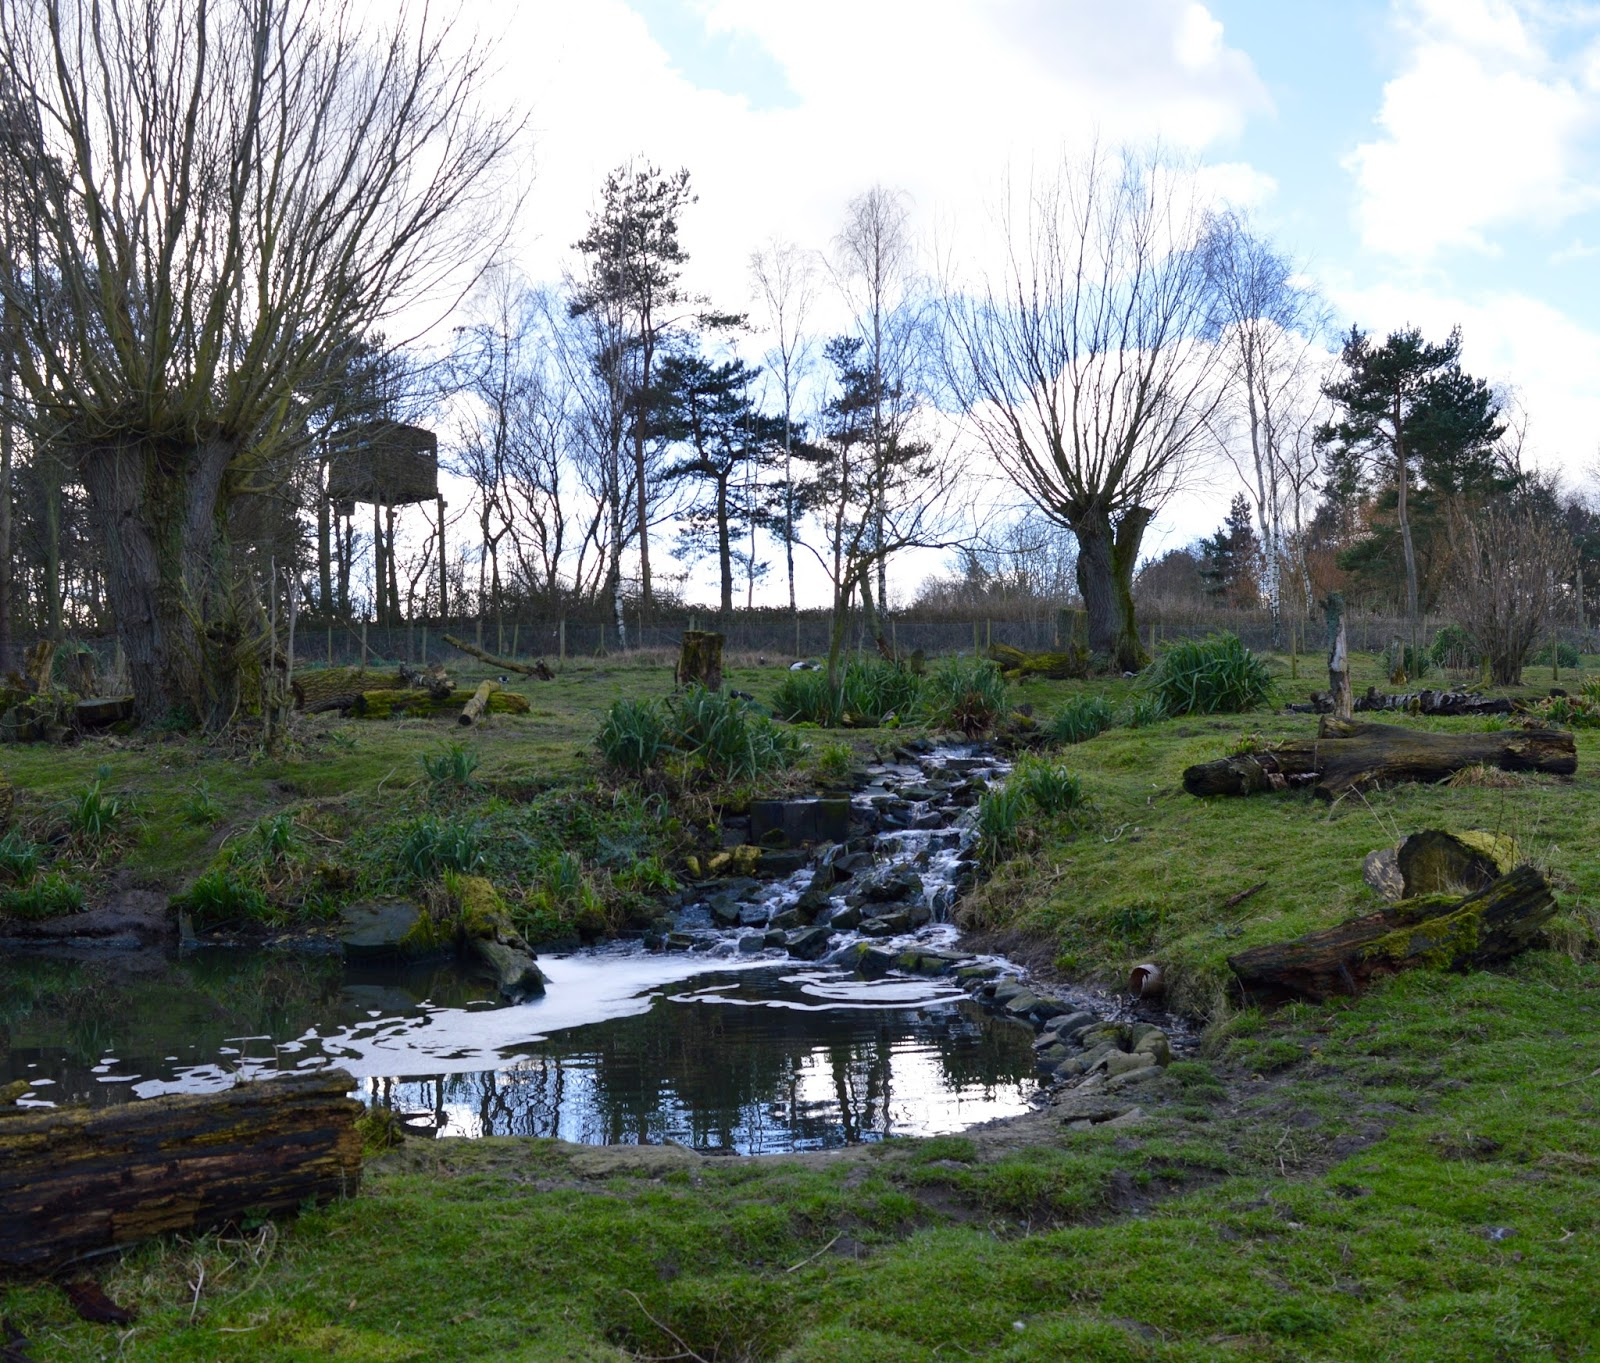 WWT Washington Wetland Centre | An Accessible North East Day Out for the Whole Family - waterfall